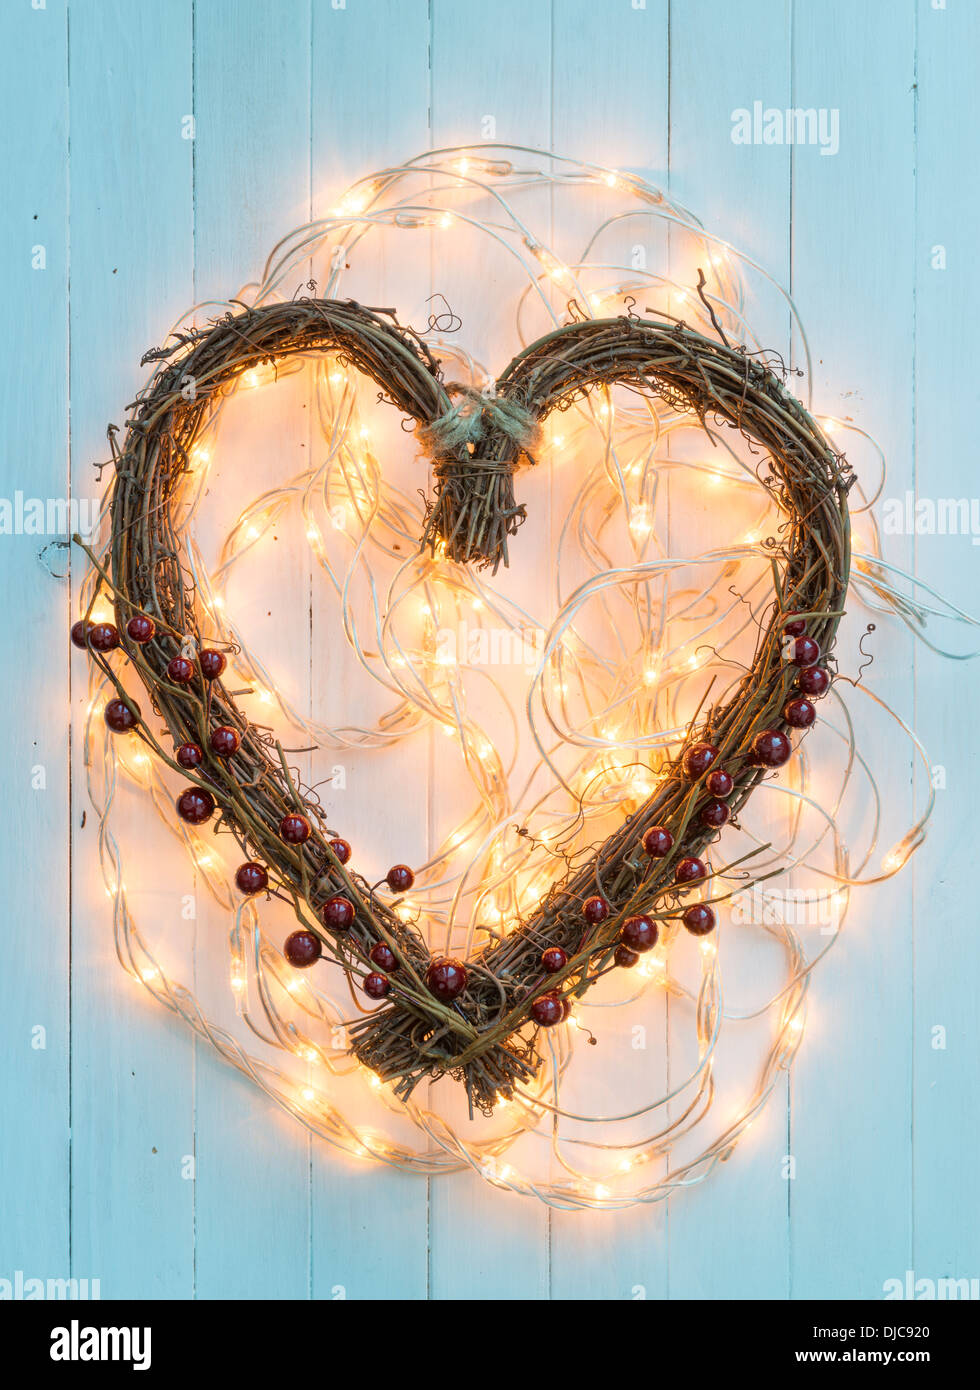 Heart shaped Christmas decoration - Stock Image